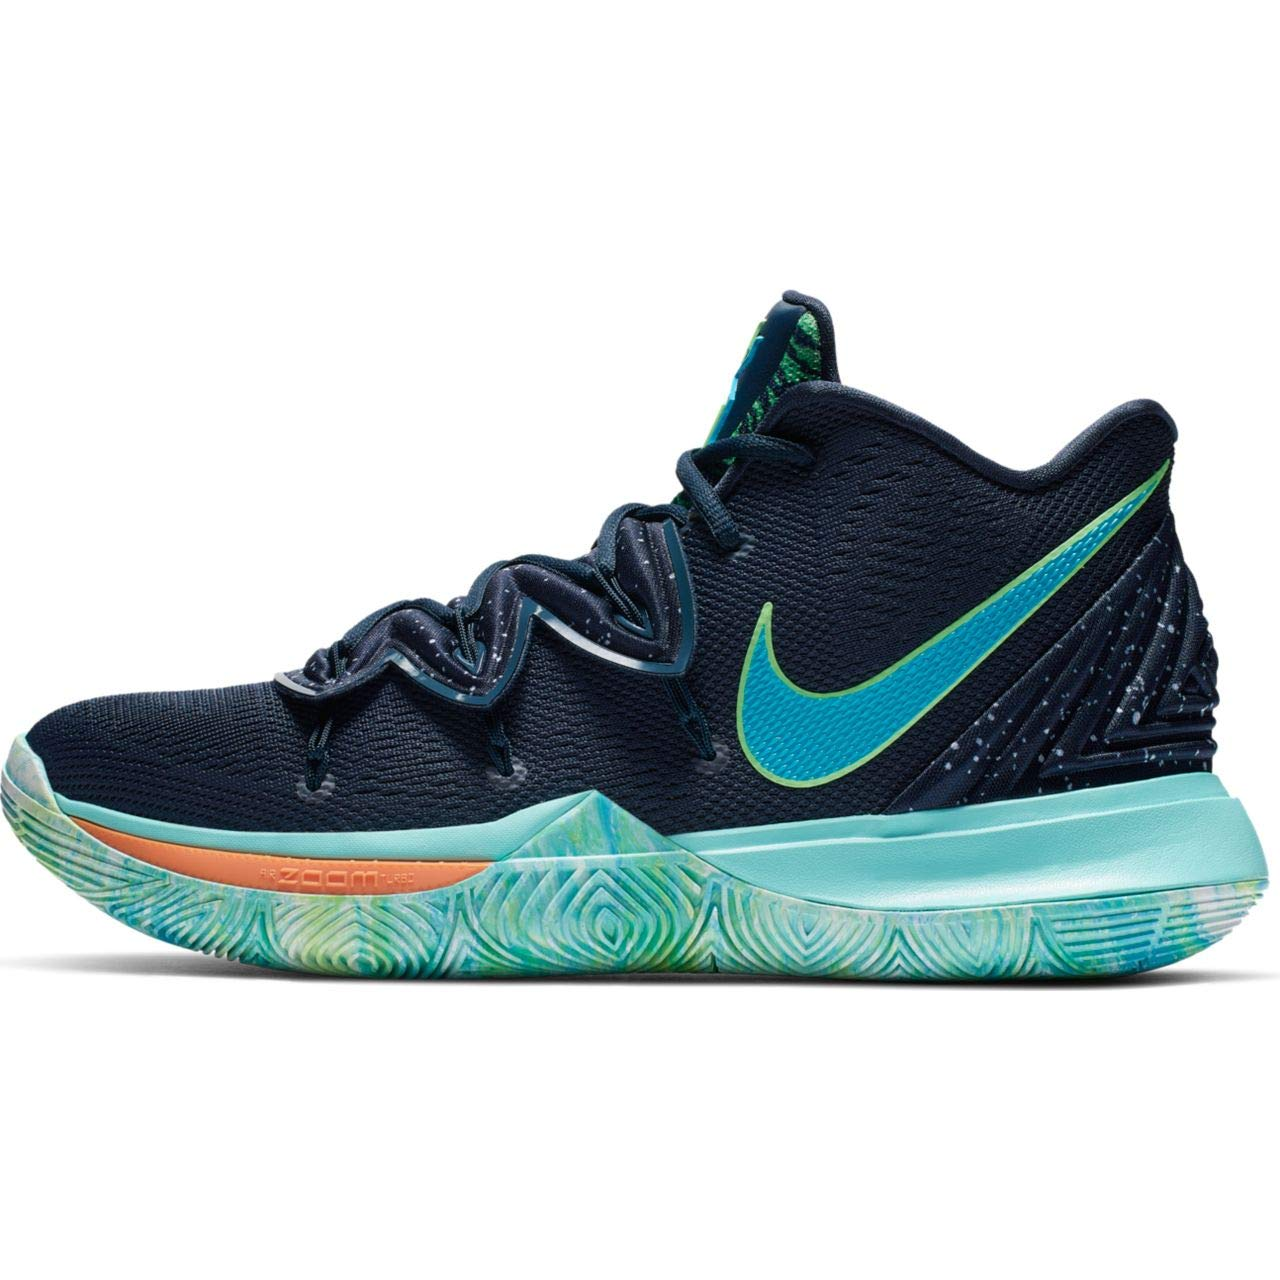 Nike Men's Kyrie 5 Obsidian/Light Current Blue/Scream Green Synthetic Basketball Shoes 10.5 M US by Nike